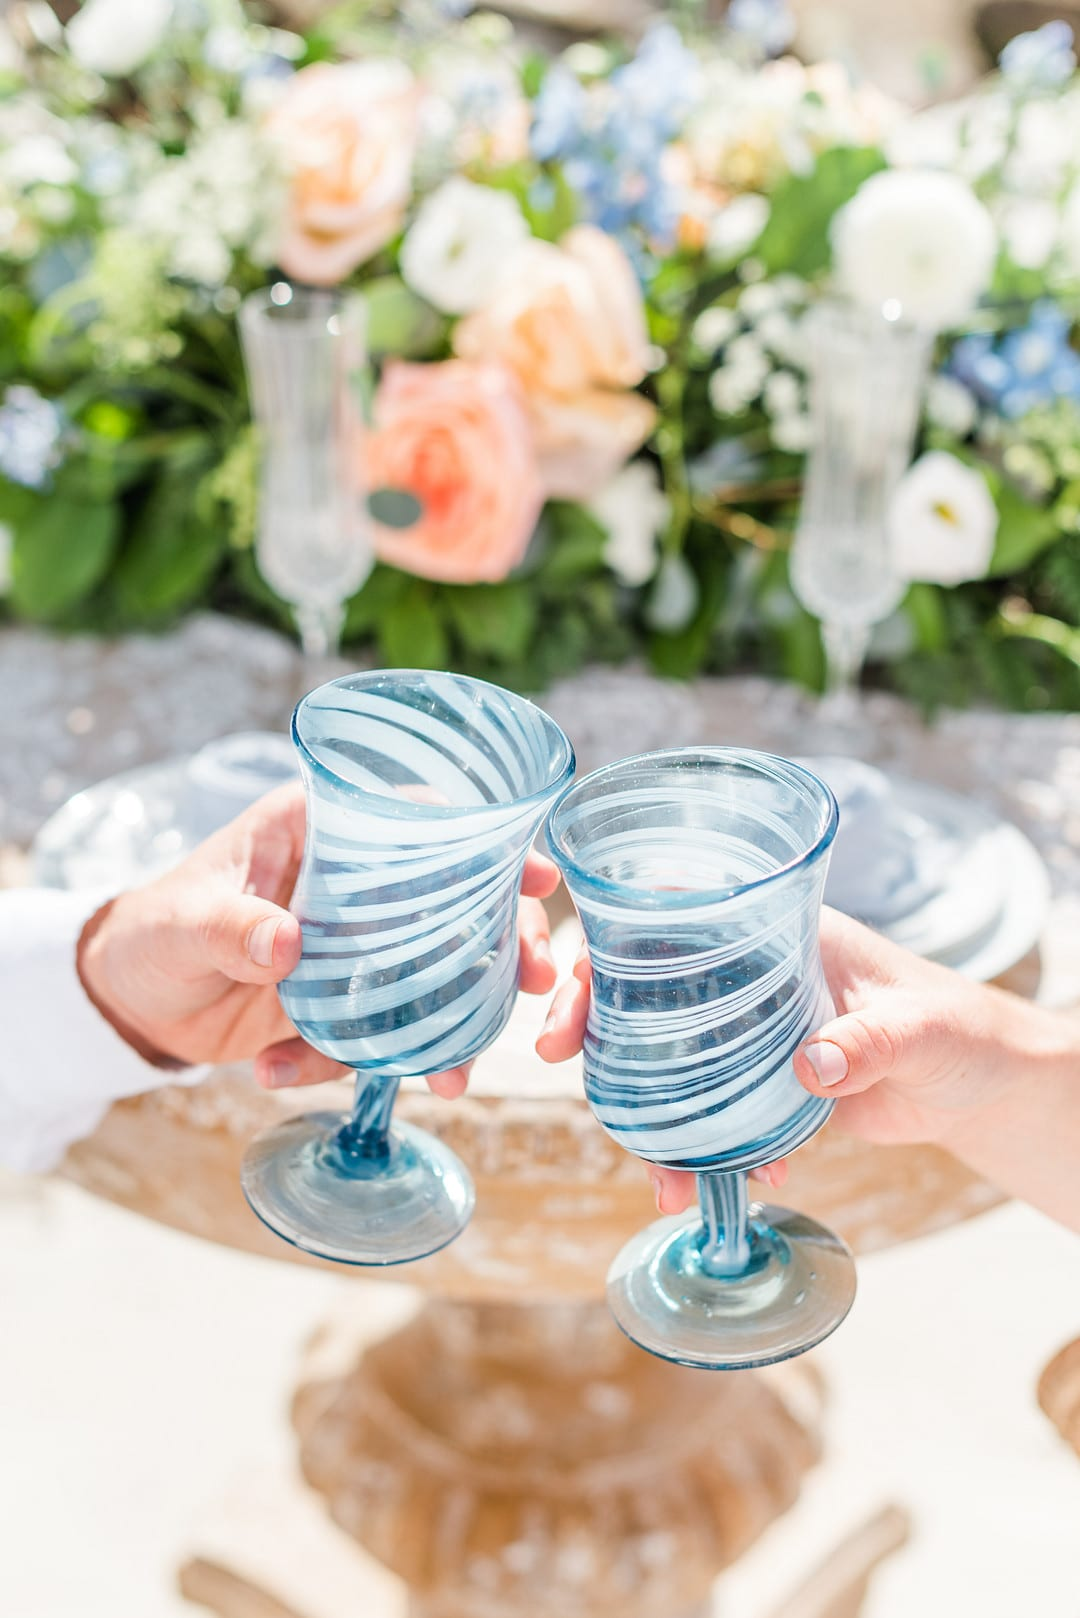 _Romantic, Spring Styled Wedding with Horses on the Beach_Christine Austin Photography_©christineaustinphotography_2021_RomanticBeachStyledShoot_Austin+Naomi_10_low